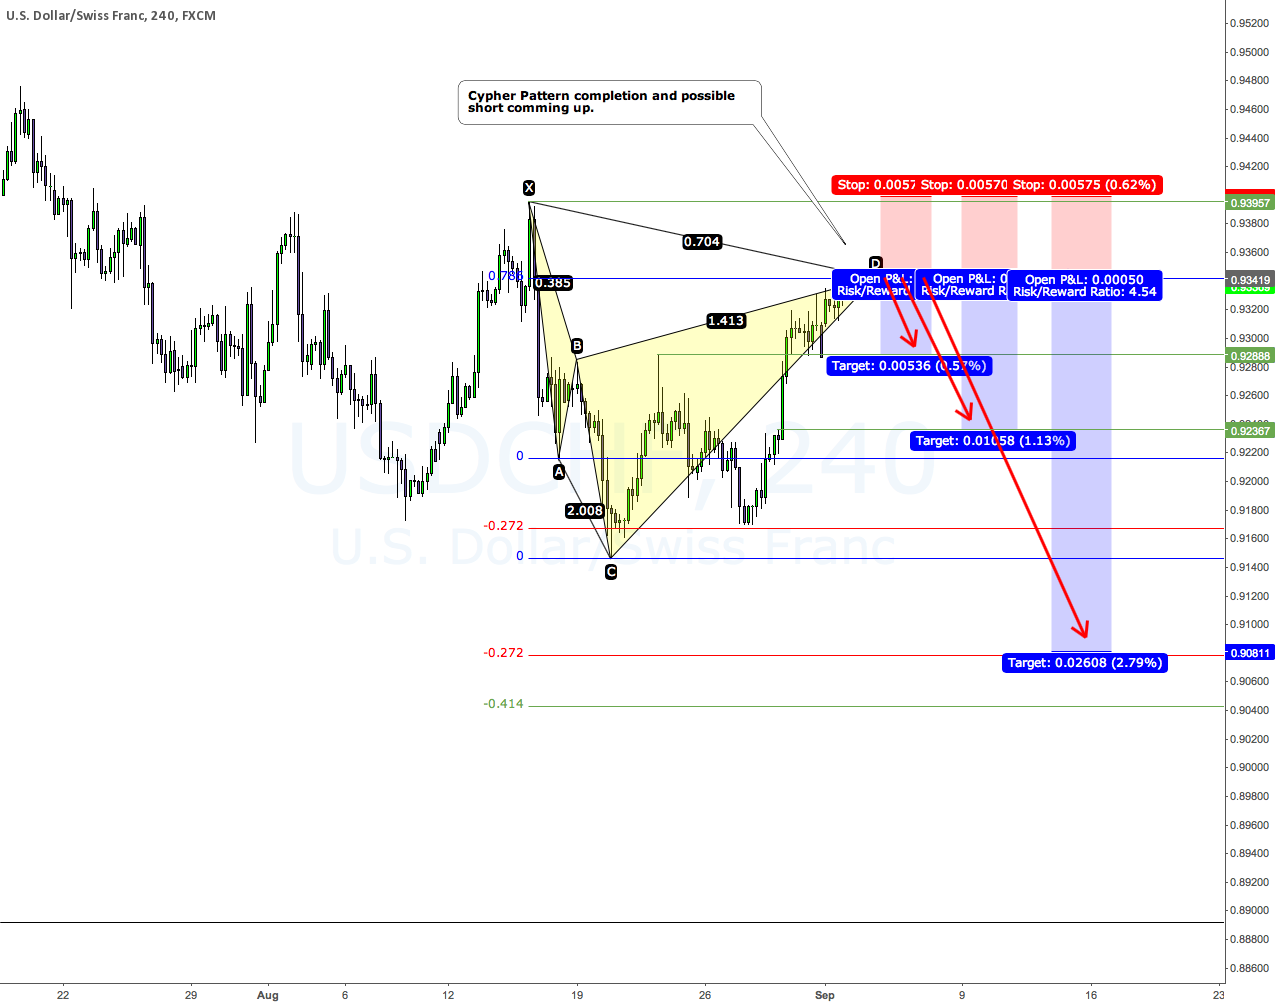 Cypher Pattern completion on the 4H chart